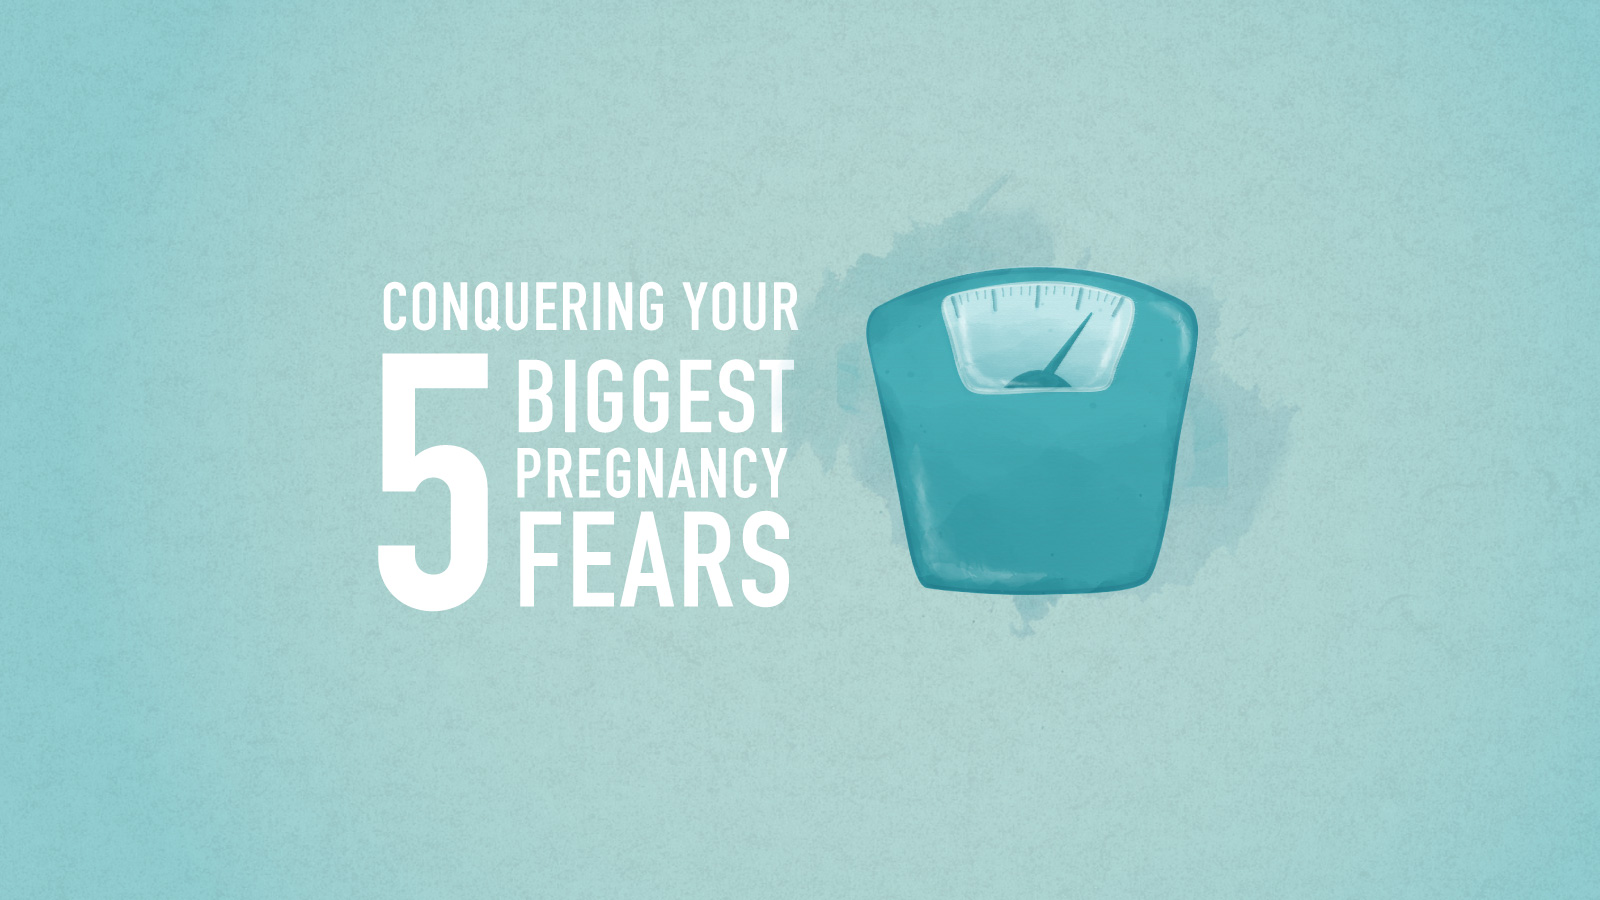 Conquering Your 5 Biggest Pregnancy Fears